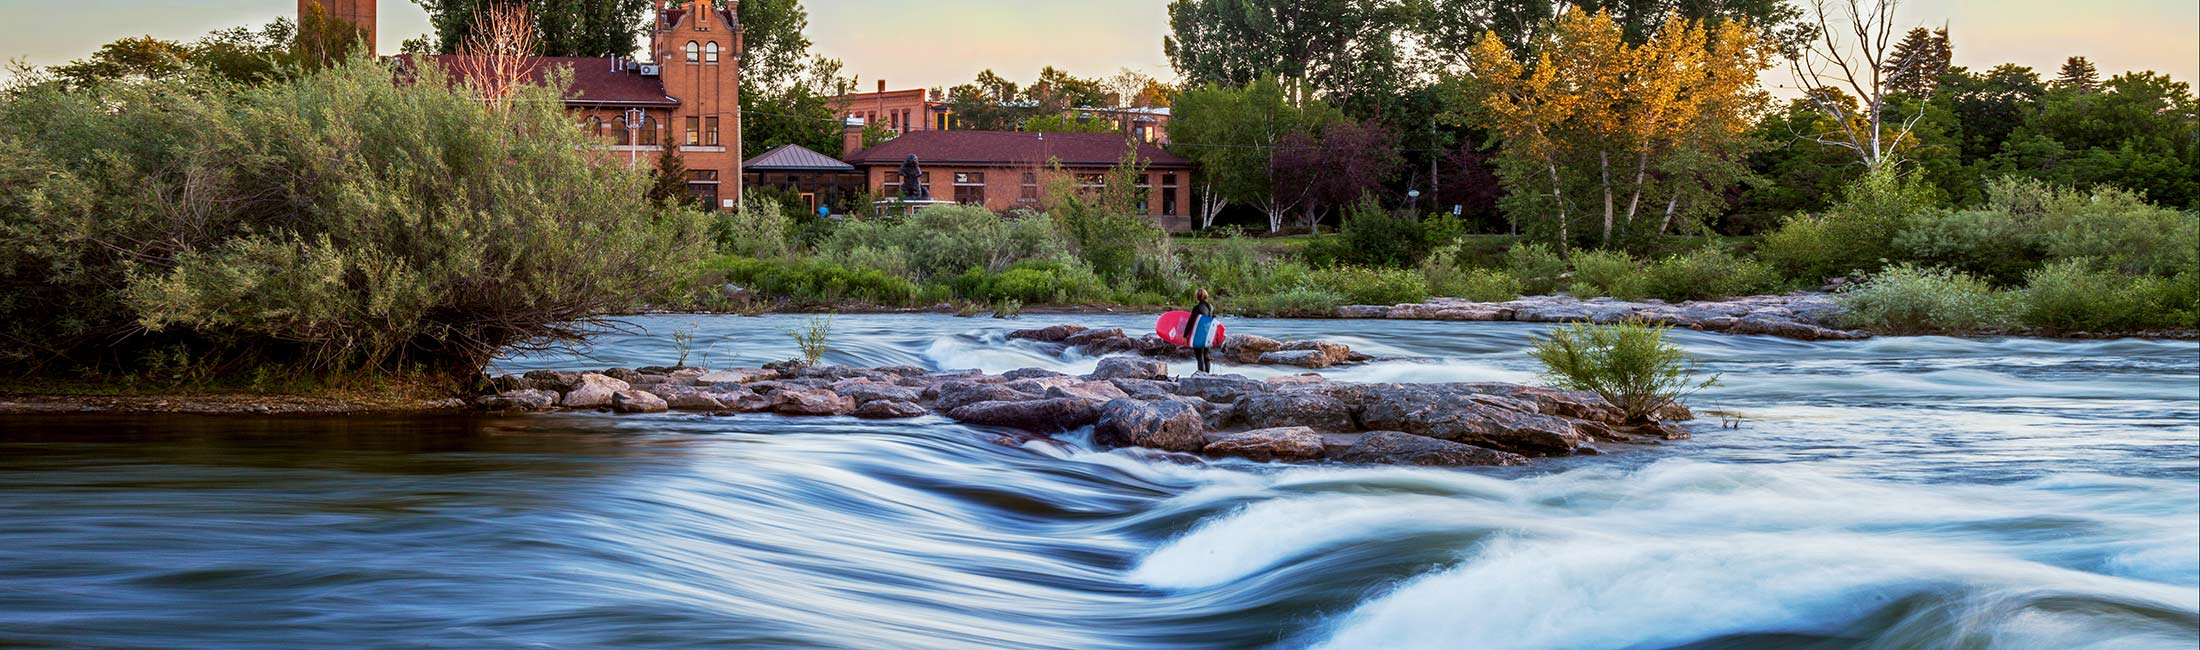 Rivers in Missoula, Montana